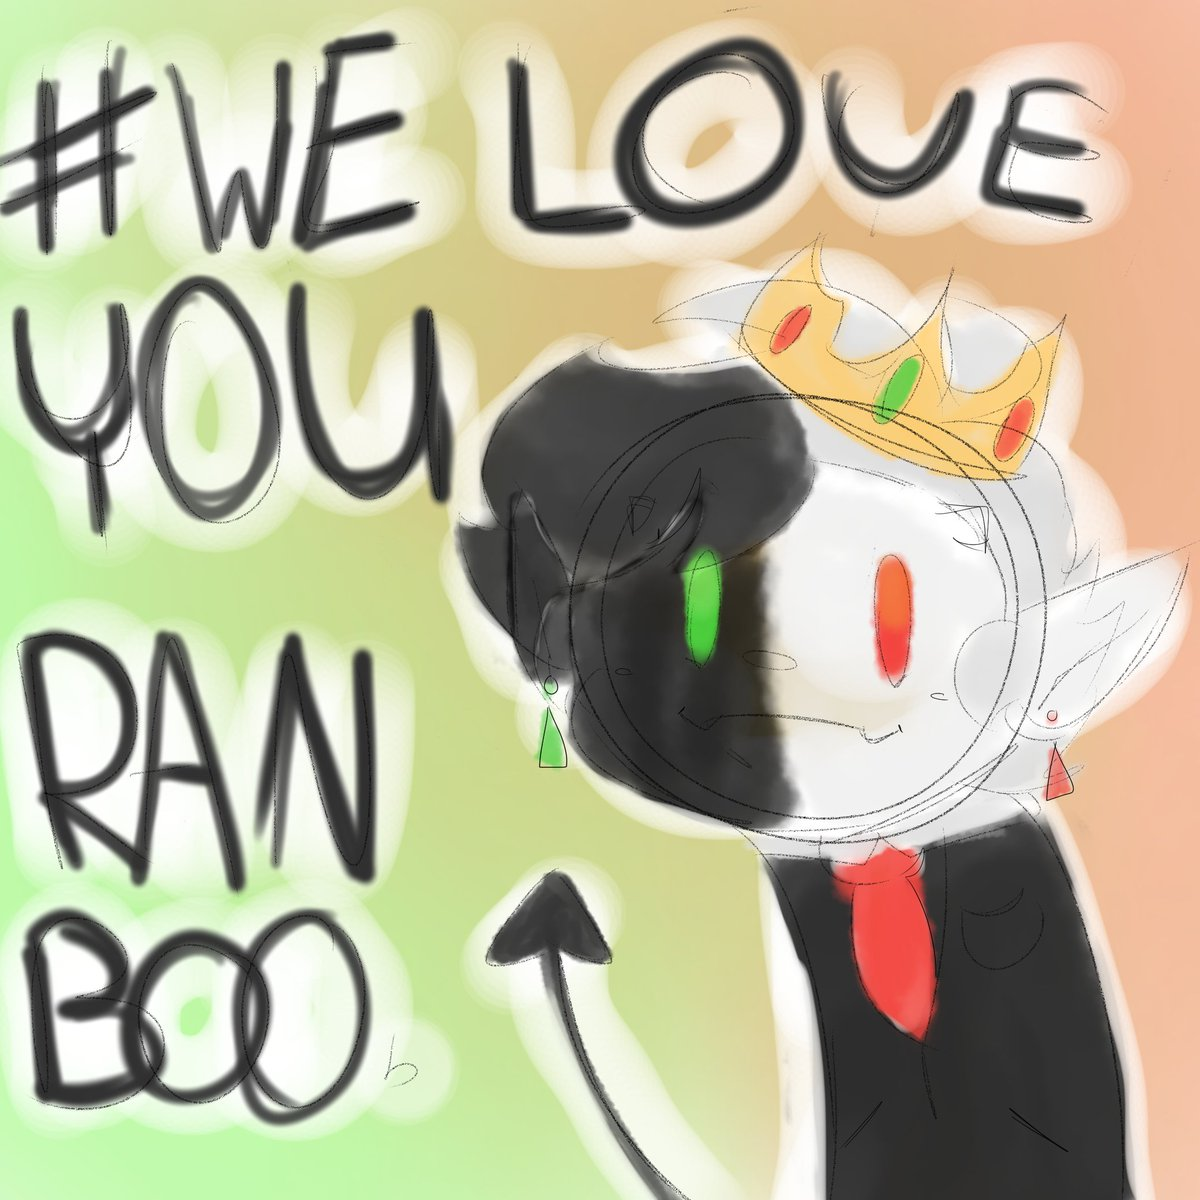 #weloveyouranboo !! Just a little mans for today i didnt have much time to draw a